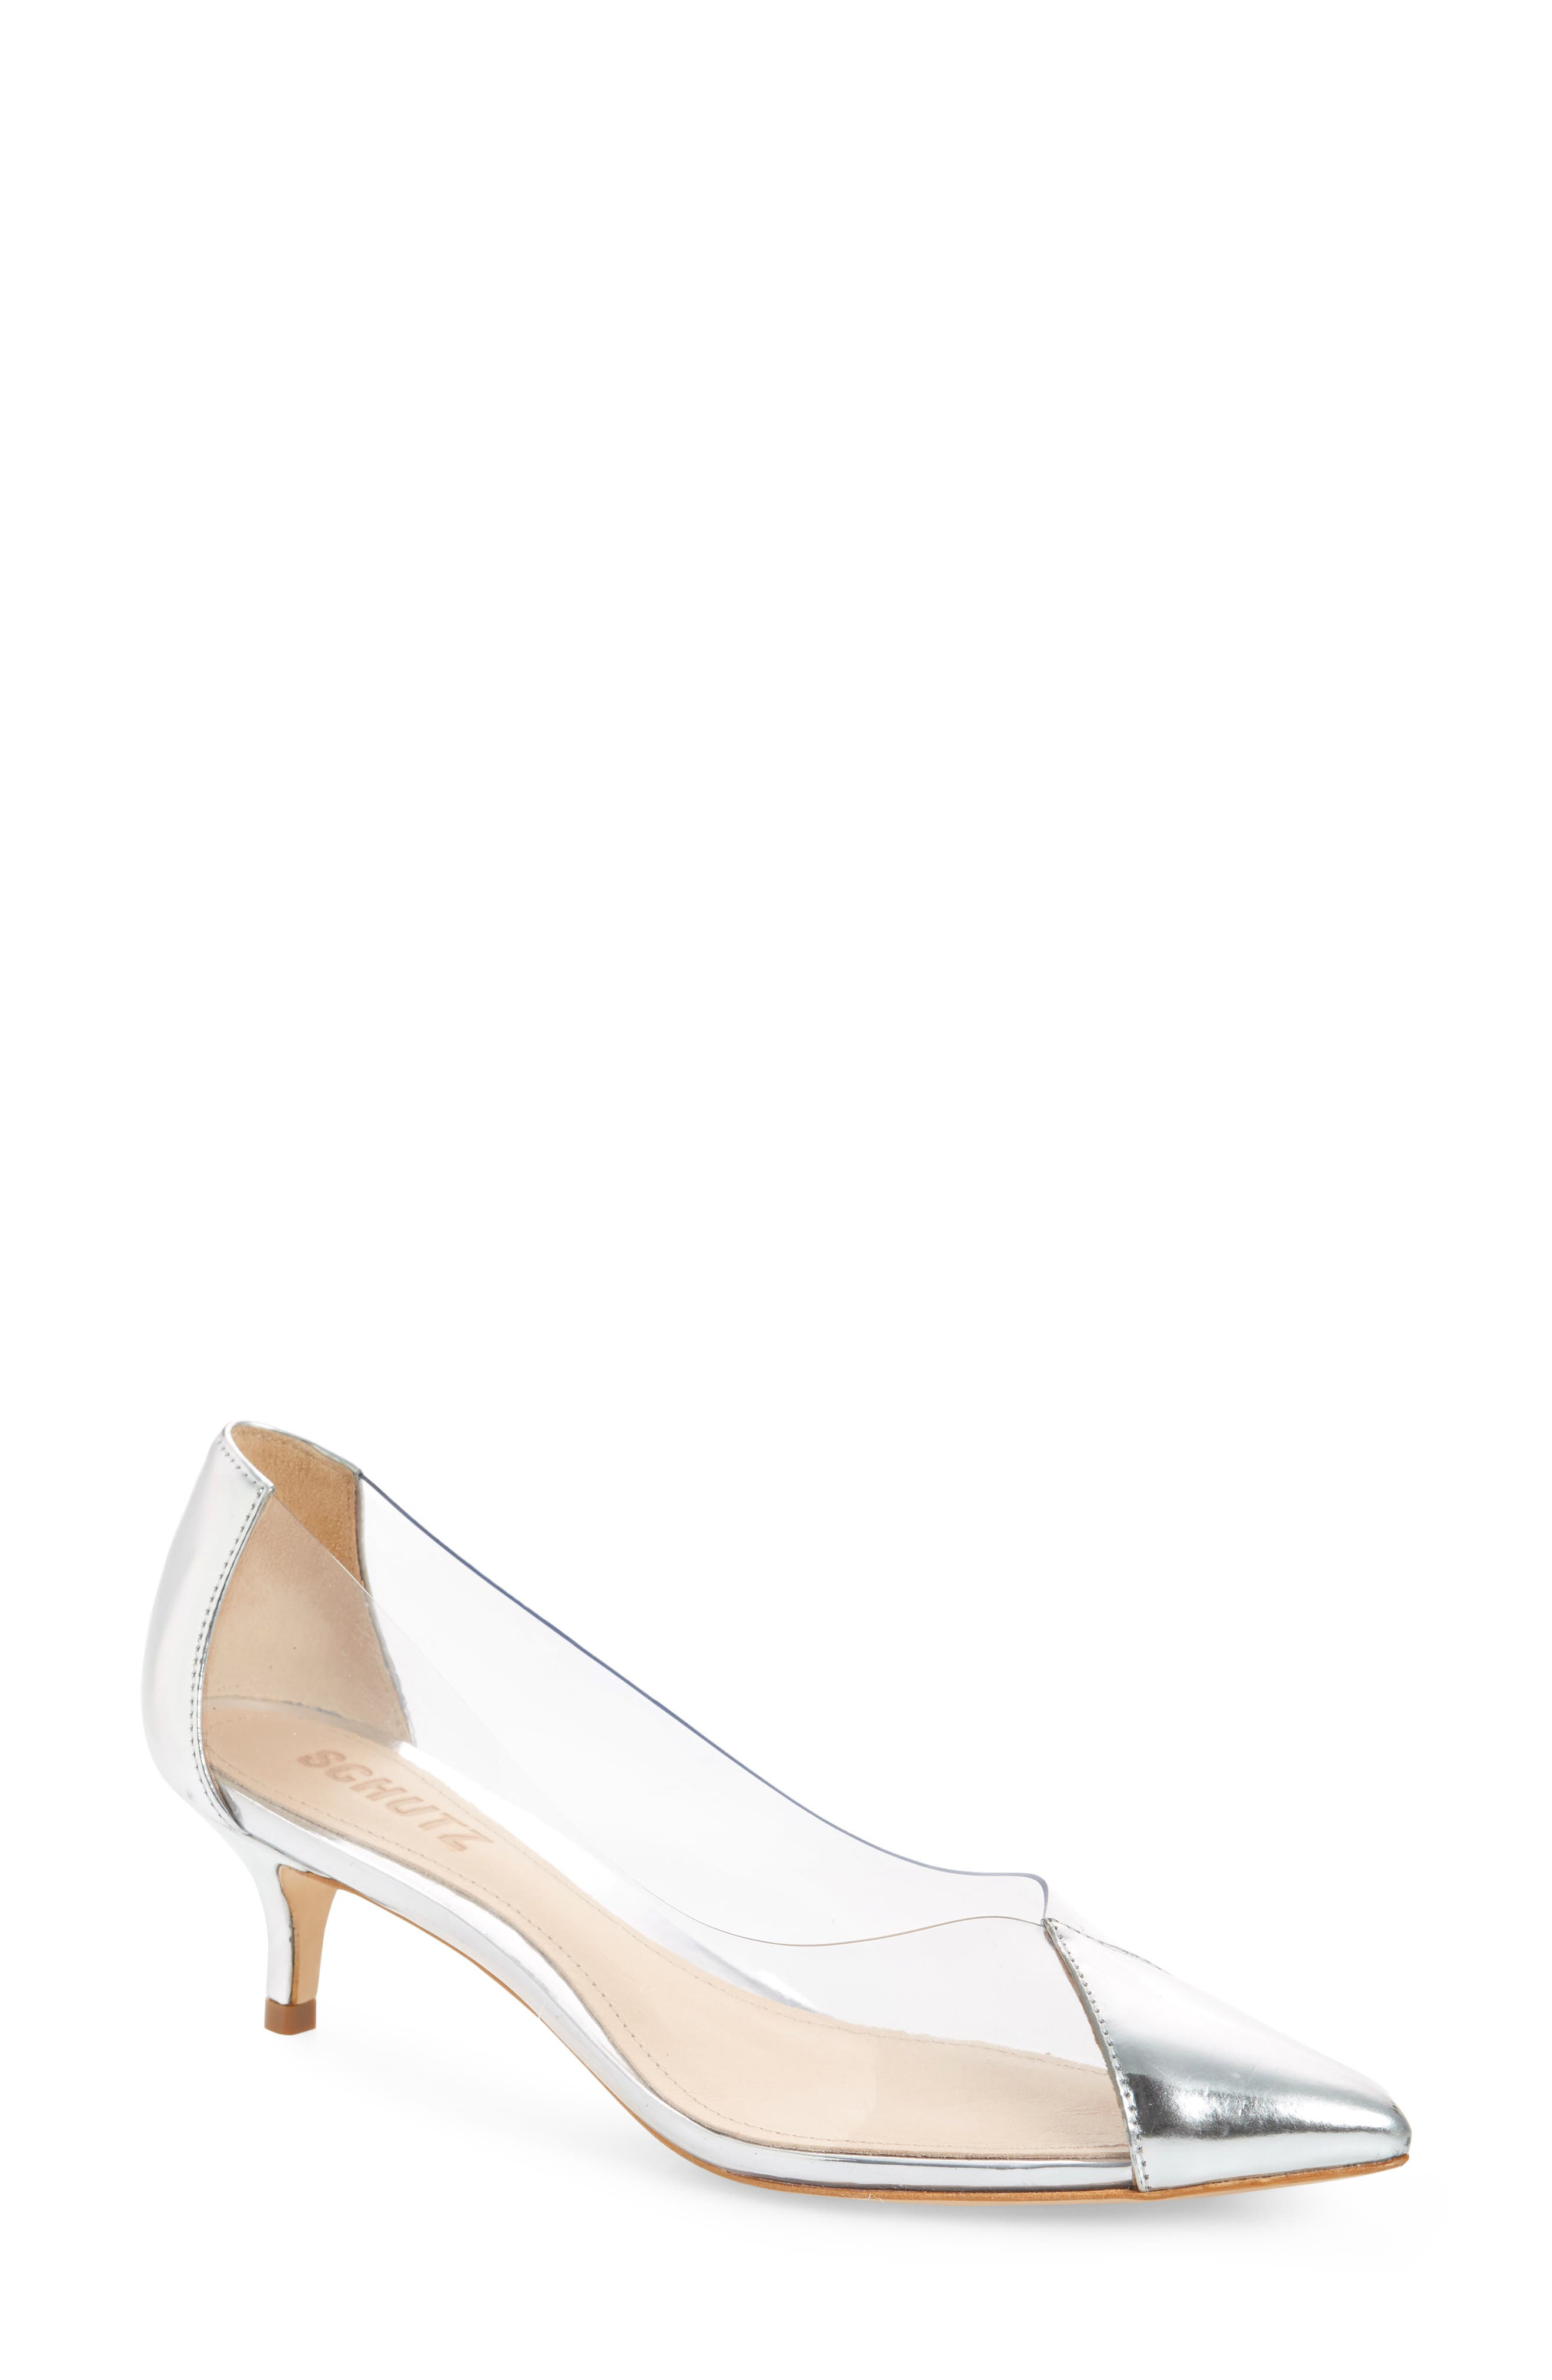 Cyou Clear Pointy Toe Pump,                         Main,                         color, SILVER SPECHIO